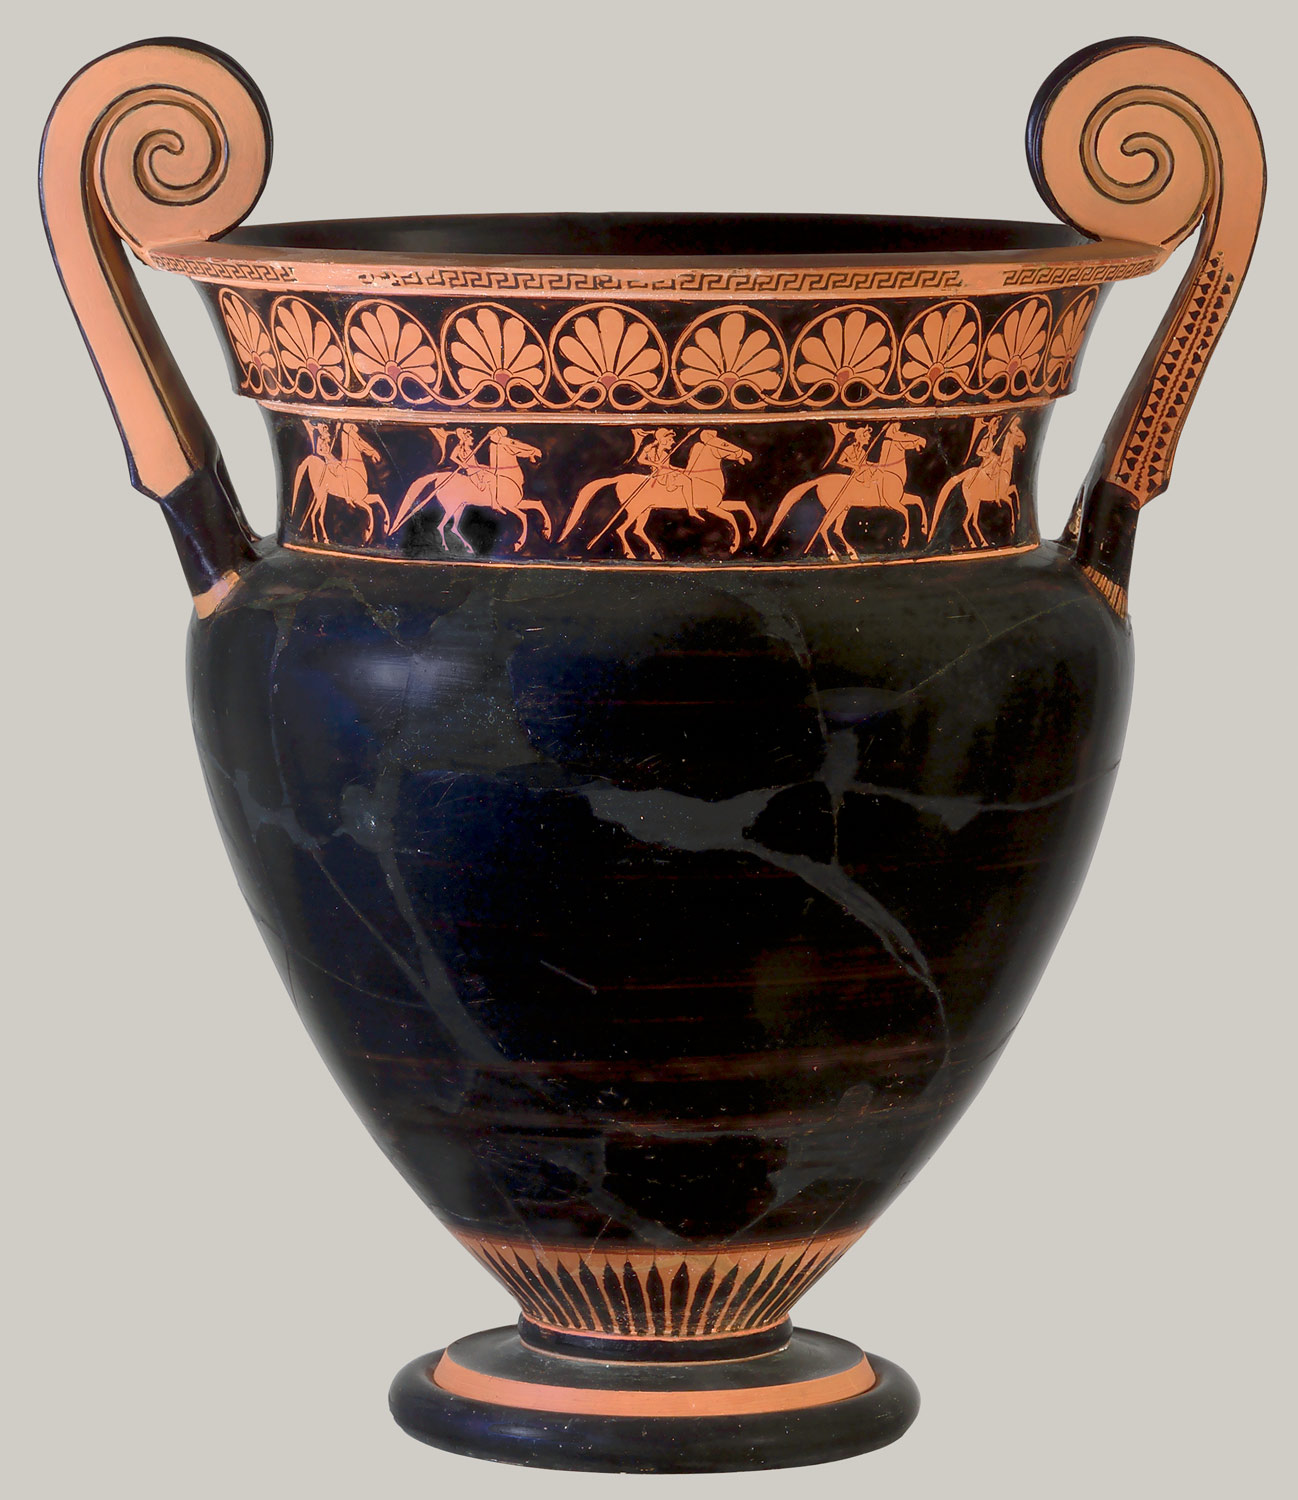 Terracotta Volute Krater Bowl For Mixing Wine And Water